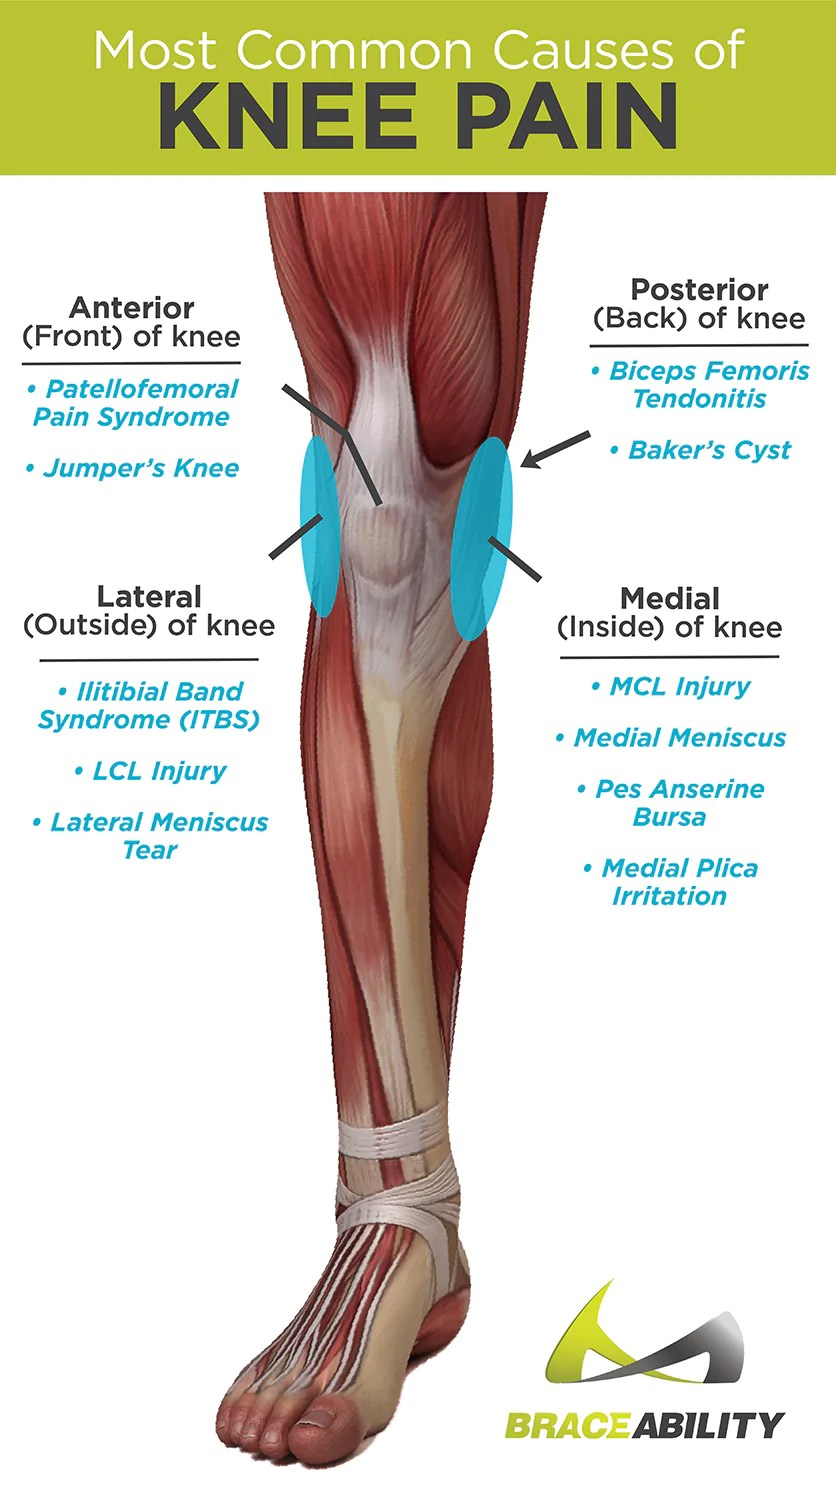 medium resolution of types of knee pain and what causes anterior posterior medial and lateral knee pain